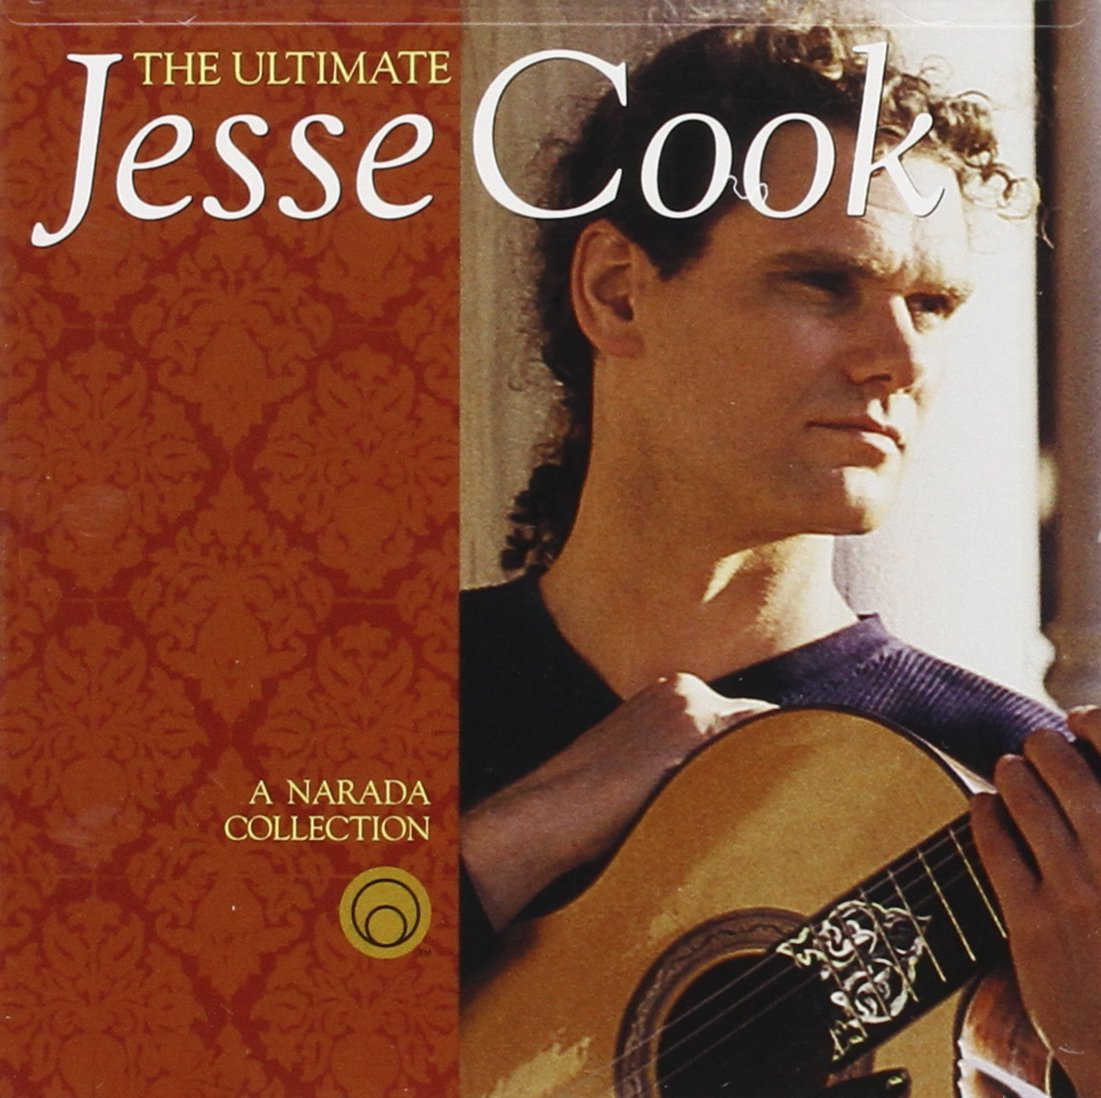 The Ultimate Jesse Cook (2-CD Set) by Narada